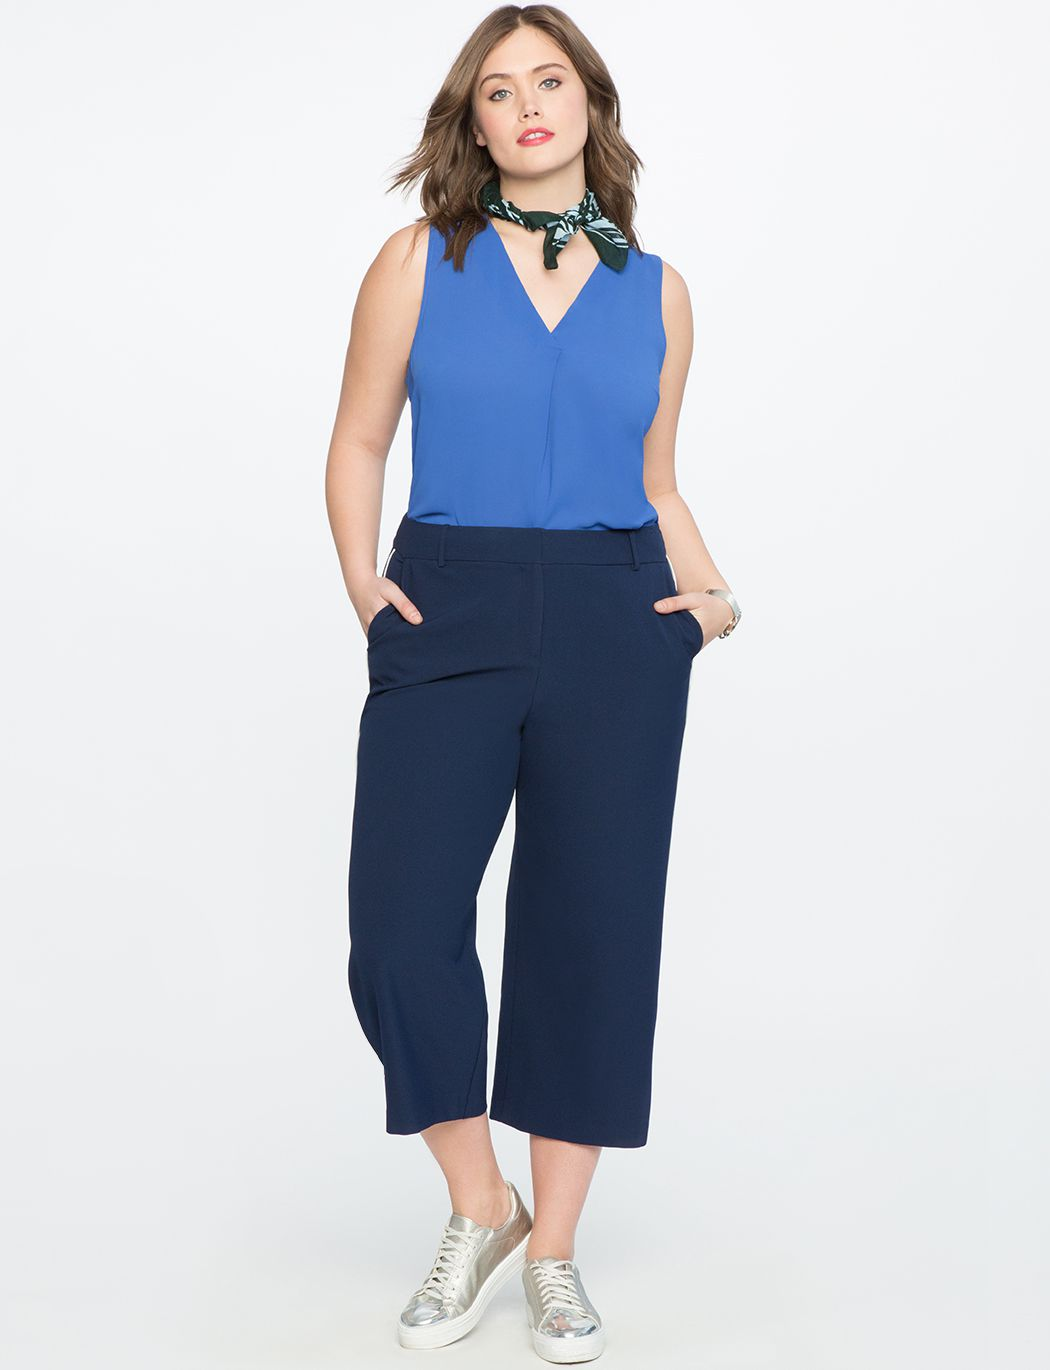 A model in blue culottes and a blue tank